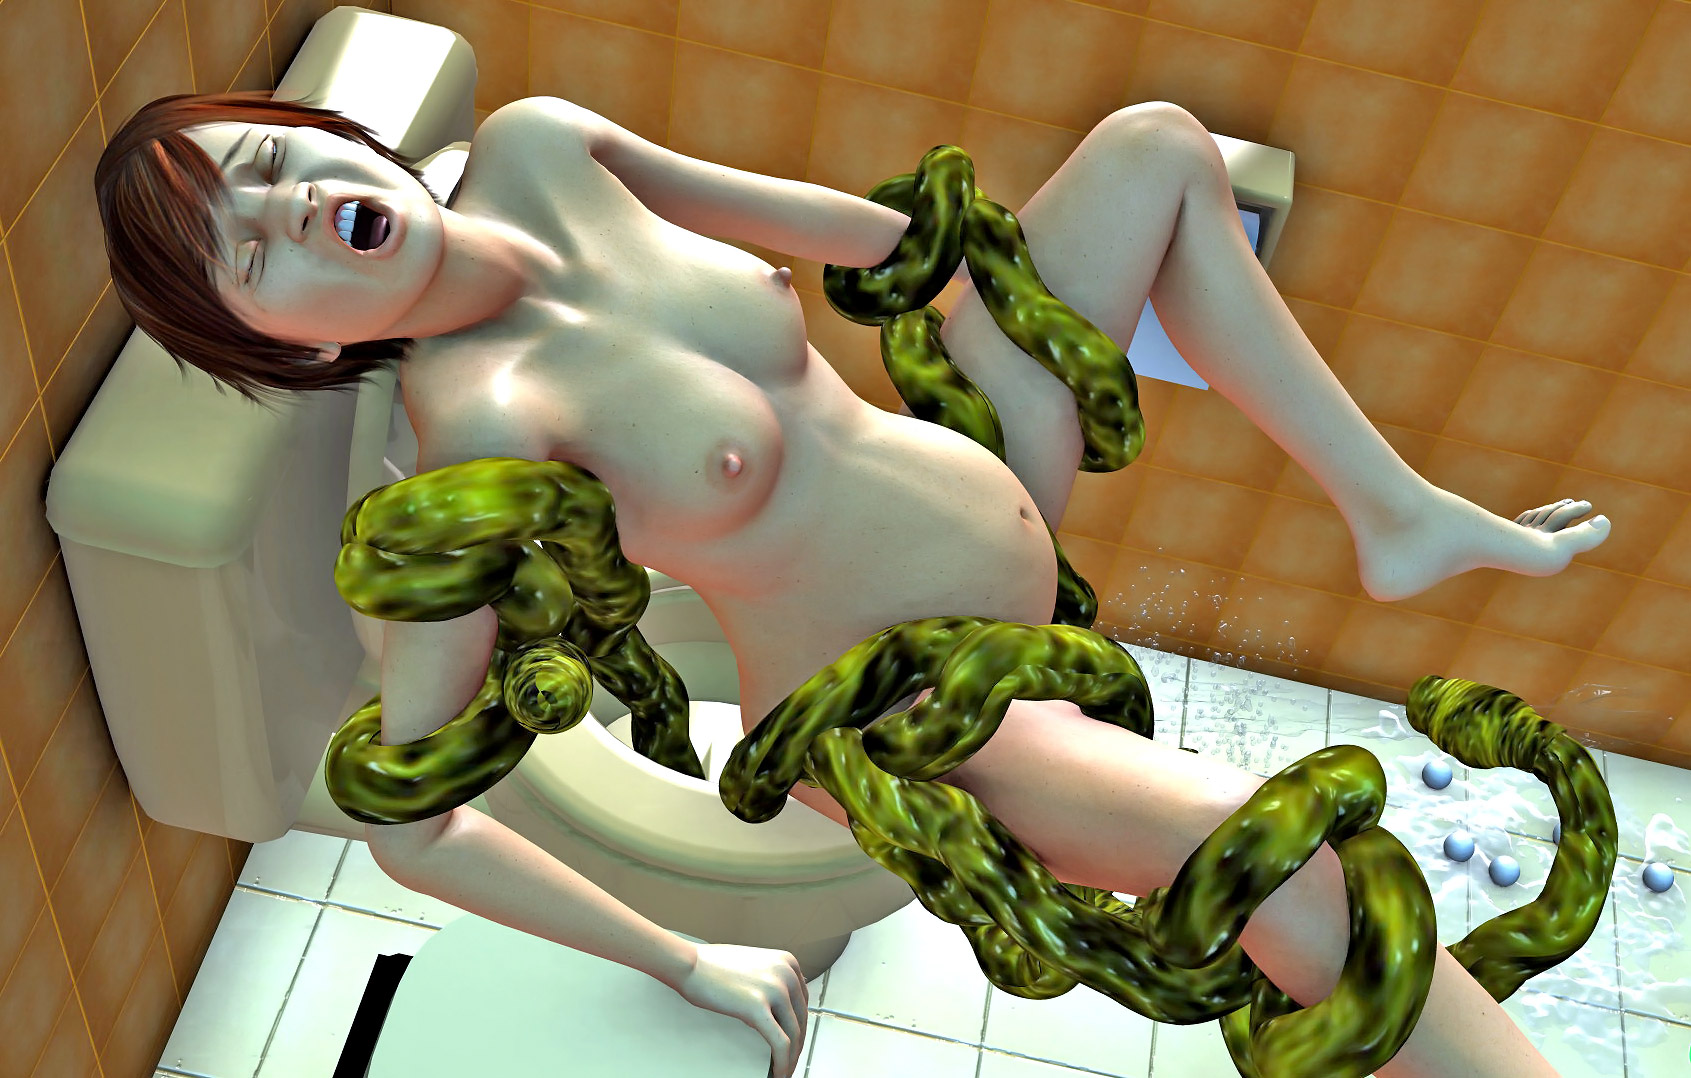 Hentai 3d porn clips snake man hentia photo